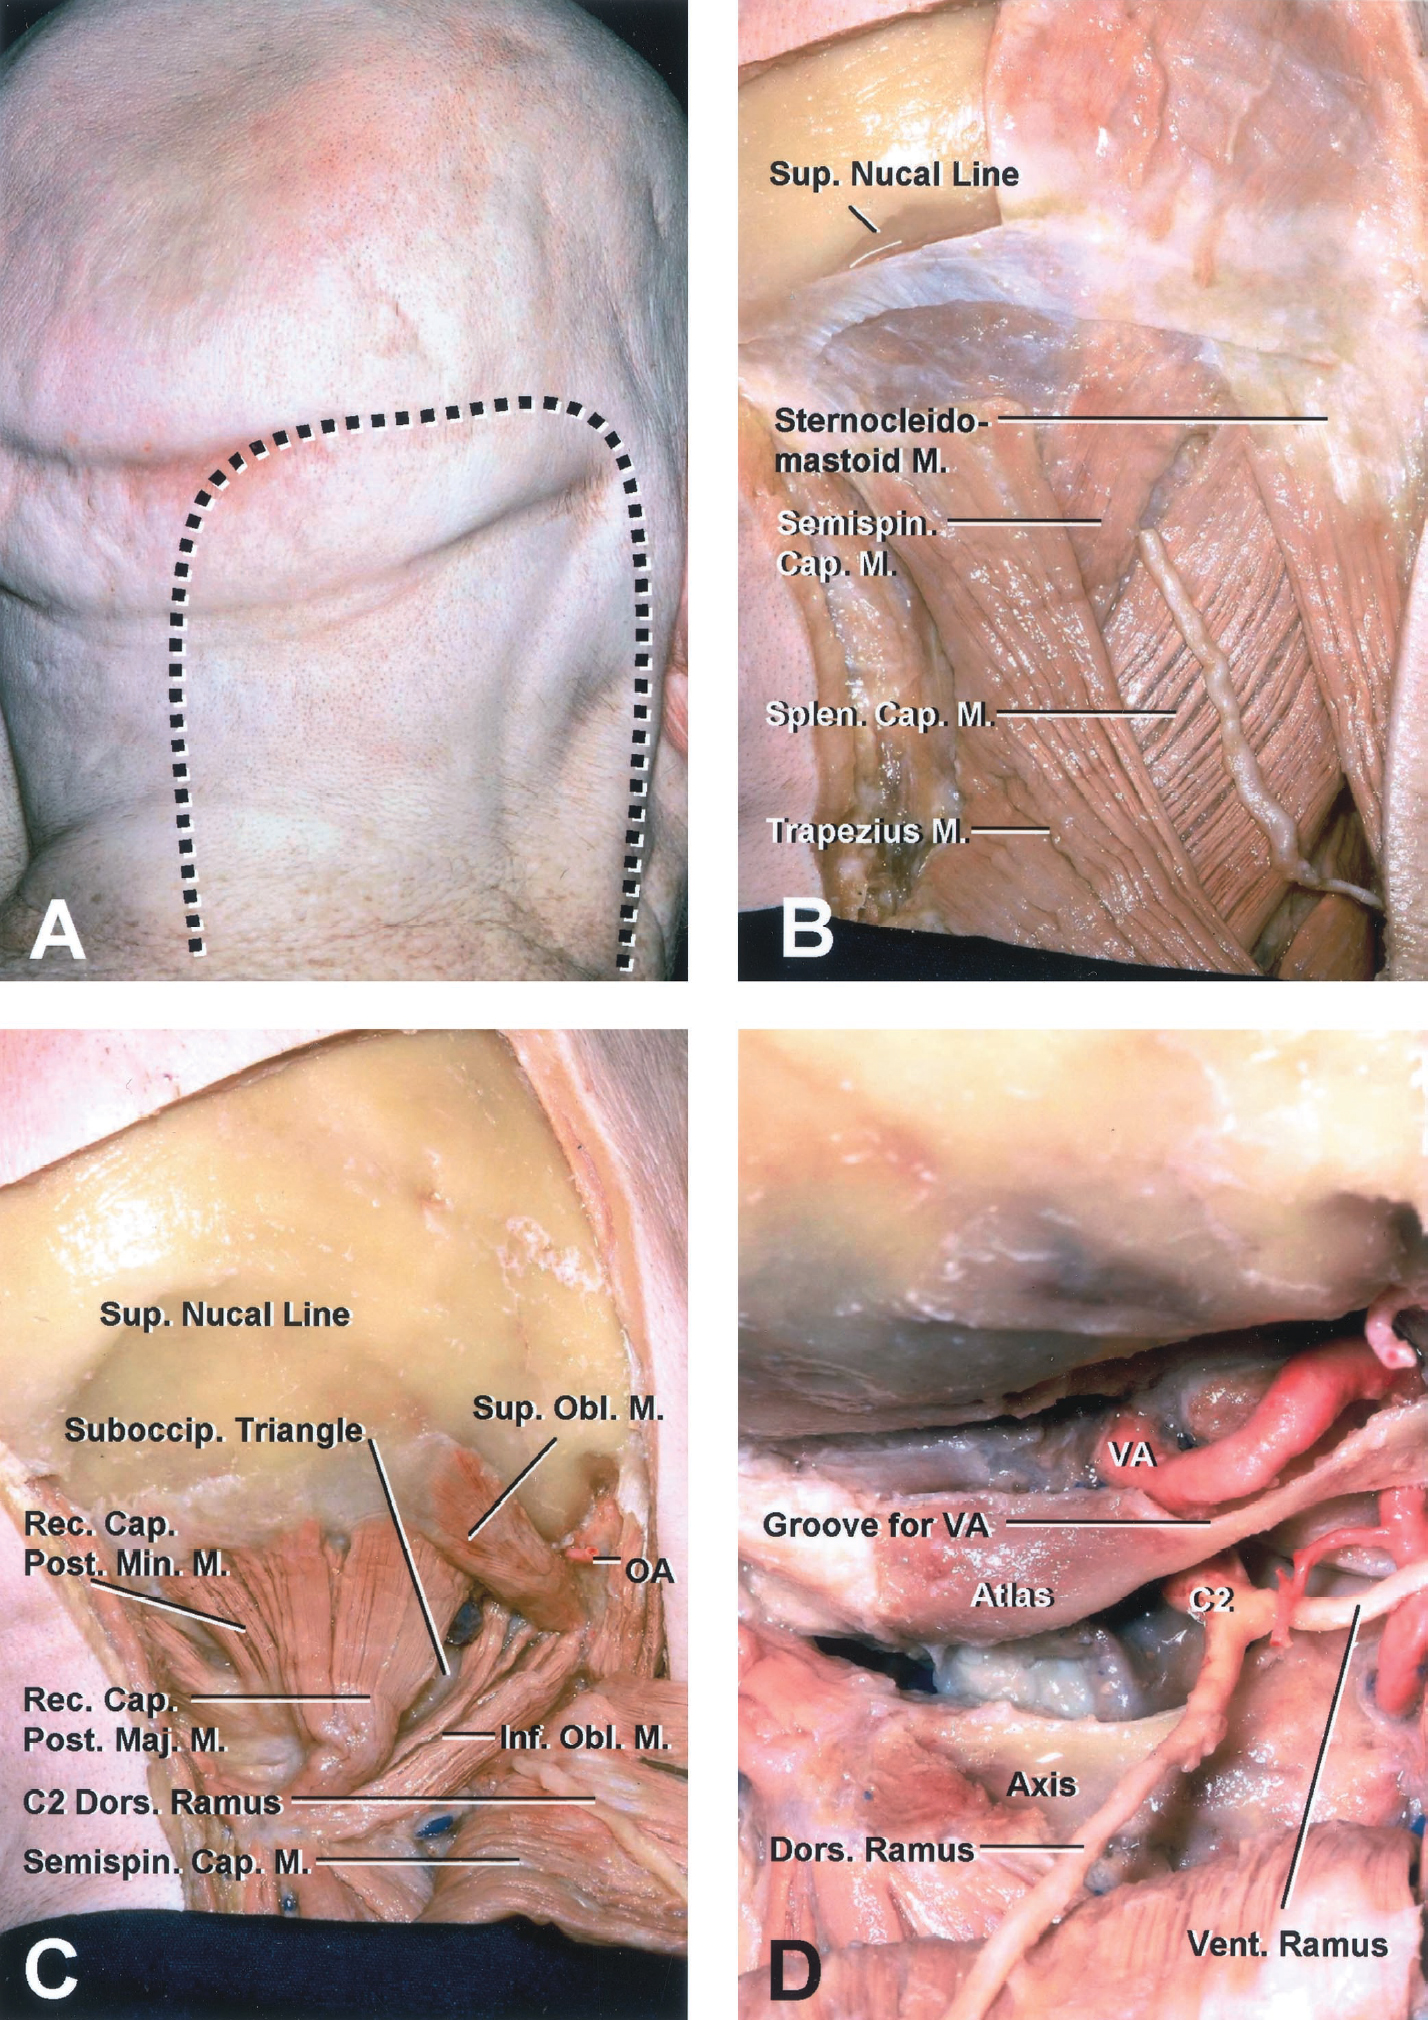 FIGURE 5 (A–D).  Far lateral atlanto-occipital transarticular approach: muscular (A–D) and extradural (E–J) stages. A, to gain access to the anterior aspect of the CVJ laterally, the muscular exposure is performed using a horseshoe scalp flap because it provides for easier reflection of the muscle layers inferiorly or inferolaterally, thus allowing a wider exposure of the lateral side and room for an upper cervical laminectomy. The muscles are reflected in a single layer with the scalp, because reflecting the muscles individually makes the closure more difficult and is associated with a high incidence of wound problems, such as pseudomeningocele. The incision begins in the midline approximately 5 cm below the external occipital protuberance and is directed upward to just above the external occipital protuberance, turns laterally just above the superior nuchal line, reaches the mastoid, and turns downward in front of the posterior border of the sternocleidomastoid muscle. B, the skin flap is reflected downward and medially to expose the most superficial layer of muscles formed by the sternocleidomastoid and splenius capitis muscles laterally and the trapezius and the semispinalis capitis muscles medially. C, reflecting the semispinalis capitis downward exposes the superior and inferior oblique muscles and the transverse process of the atlas, which has a prominent apex palpable through the skin between the mastoid process and mandibular angle. The suboccipital triangle is limited by three muscles (above and medially by the rectus capitis posterior major, above and laterally by the superior oblique, and below and laterally by the inferior oblique). D, the suboccipital triangle is opened by reflecting the rectus capitis posterior major inferiorly and medially, the superior oblique laterally, and the inferior oblique medially. Opening the triangle exposes the portion of the vertebral venous plexus that surrounds the vertebral artery, which passes behind the atlanto-occipital joint and crosses the upper edge of the posterior arch of the atlas. The C2 nerve emerges between the posterior arch of the atlas and the lamina of the axis. Distal to the ganglion, the nerve divides into larger dorsal and smaller ventral rami. A-O, atlanto-occipital; Ant., anterior; Art., articular; Cap., capitis; CN, cranial nerve; Cond., condyle; Dent., dentate; Dors., dorsal; For., foramen; Inf., inferior; Int., internal; Jug., jugular; Lig., ligament; Long., longitudinal, longus; M., muscle; Maj., major; Min., minor; OA, occipital artery; Obl., oblique; Occip., occipital; P.I.C.A., posteroinferior cerebellar artery; Post., posterior; Proc., process; Rec., rectus; Semispin., semispinalis; Splen., splenius; Suboccip., suboccipital; Sup., superior; Trans., transverse; V., vein; VA, vertebral artery; Vent., ventral.  (Images courtesy of AL Rhoton, Jr.)